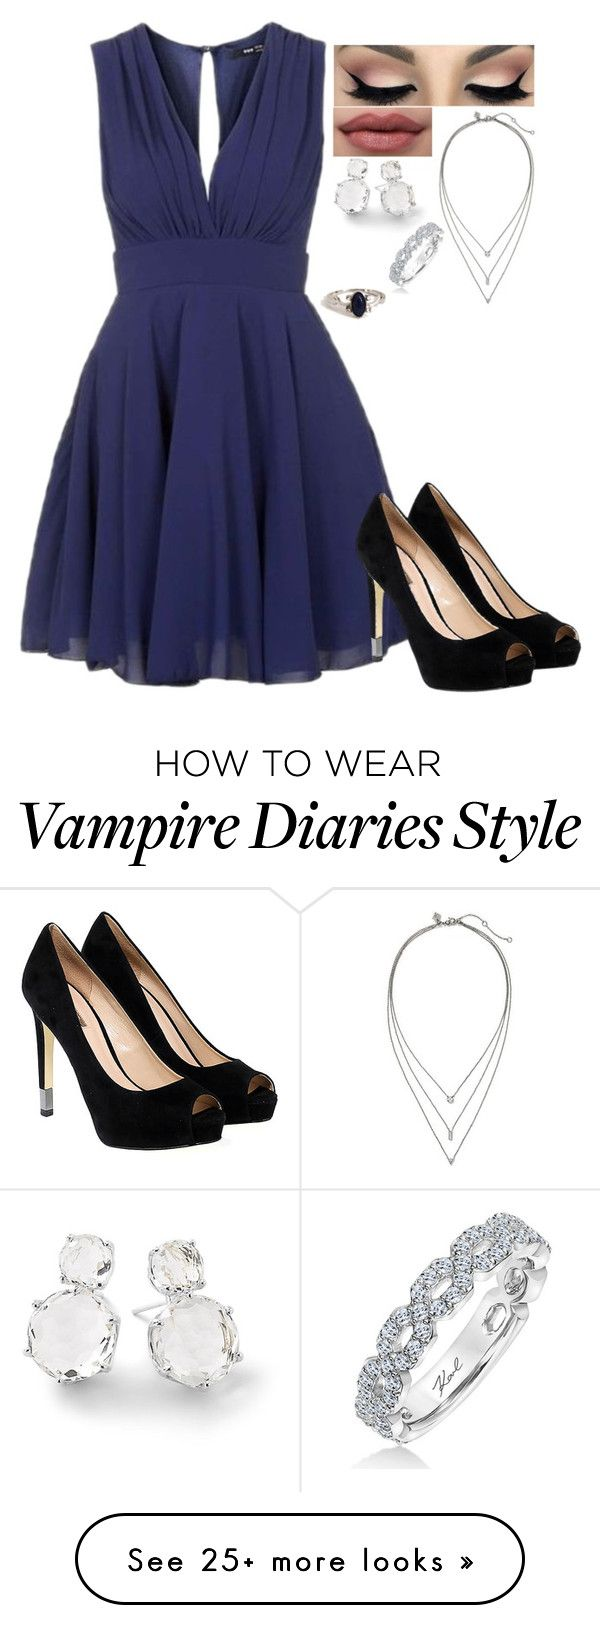 """""""Party with Stefan Salvatore (the vampire Diaries)"""" by j-j-fandoms on Polyvore featuring TFNC, GUESS, Banana Republic, Ippolita and Karl Lagerfeld"""